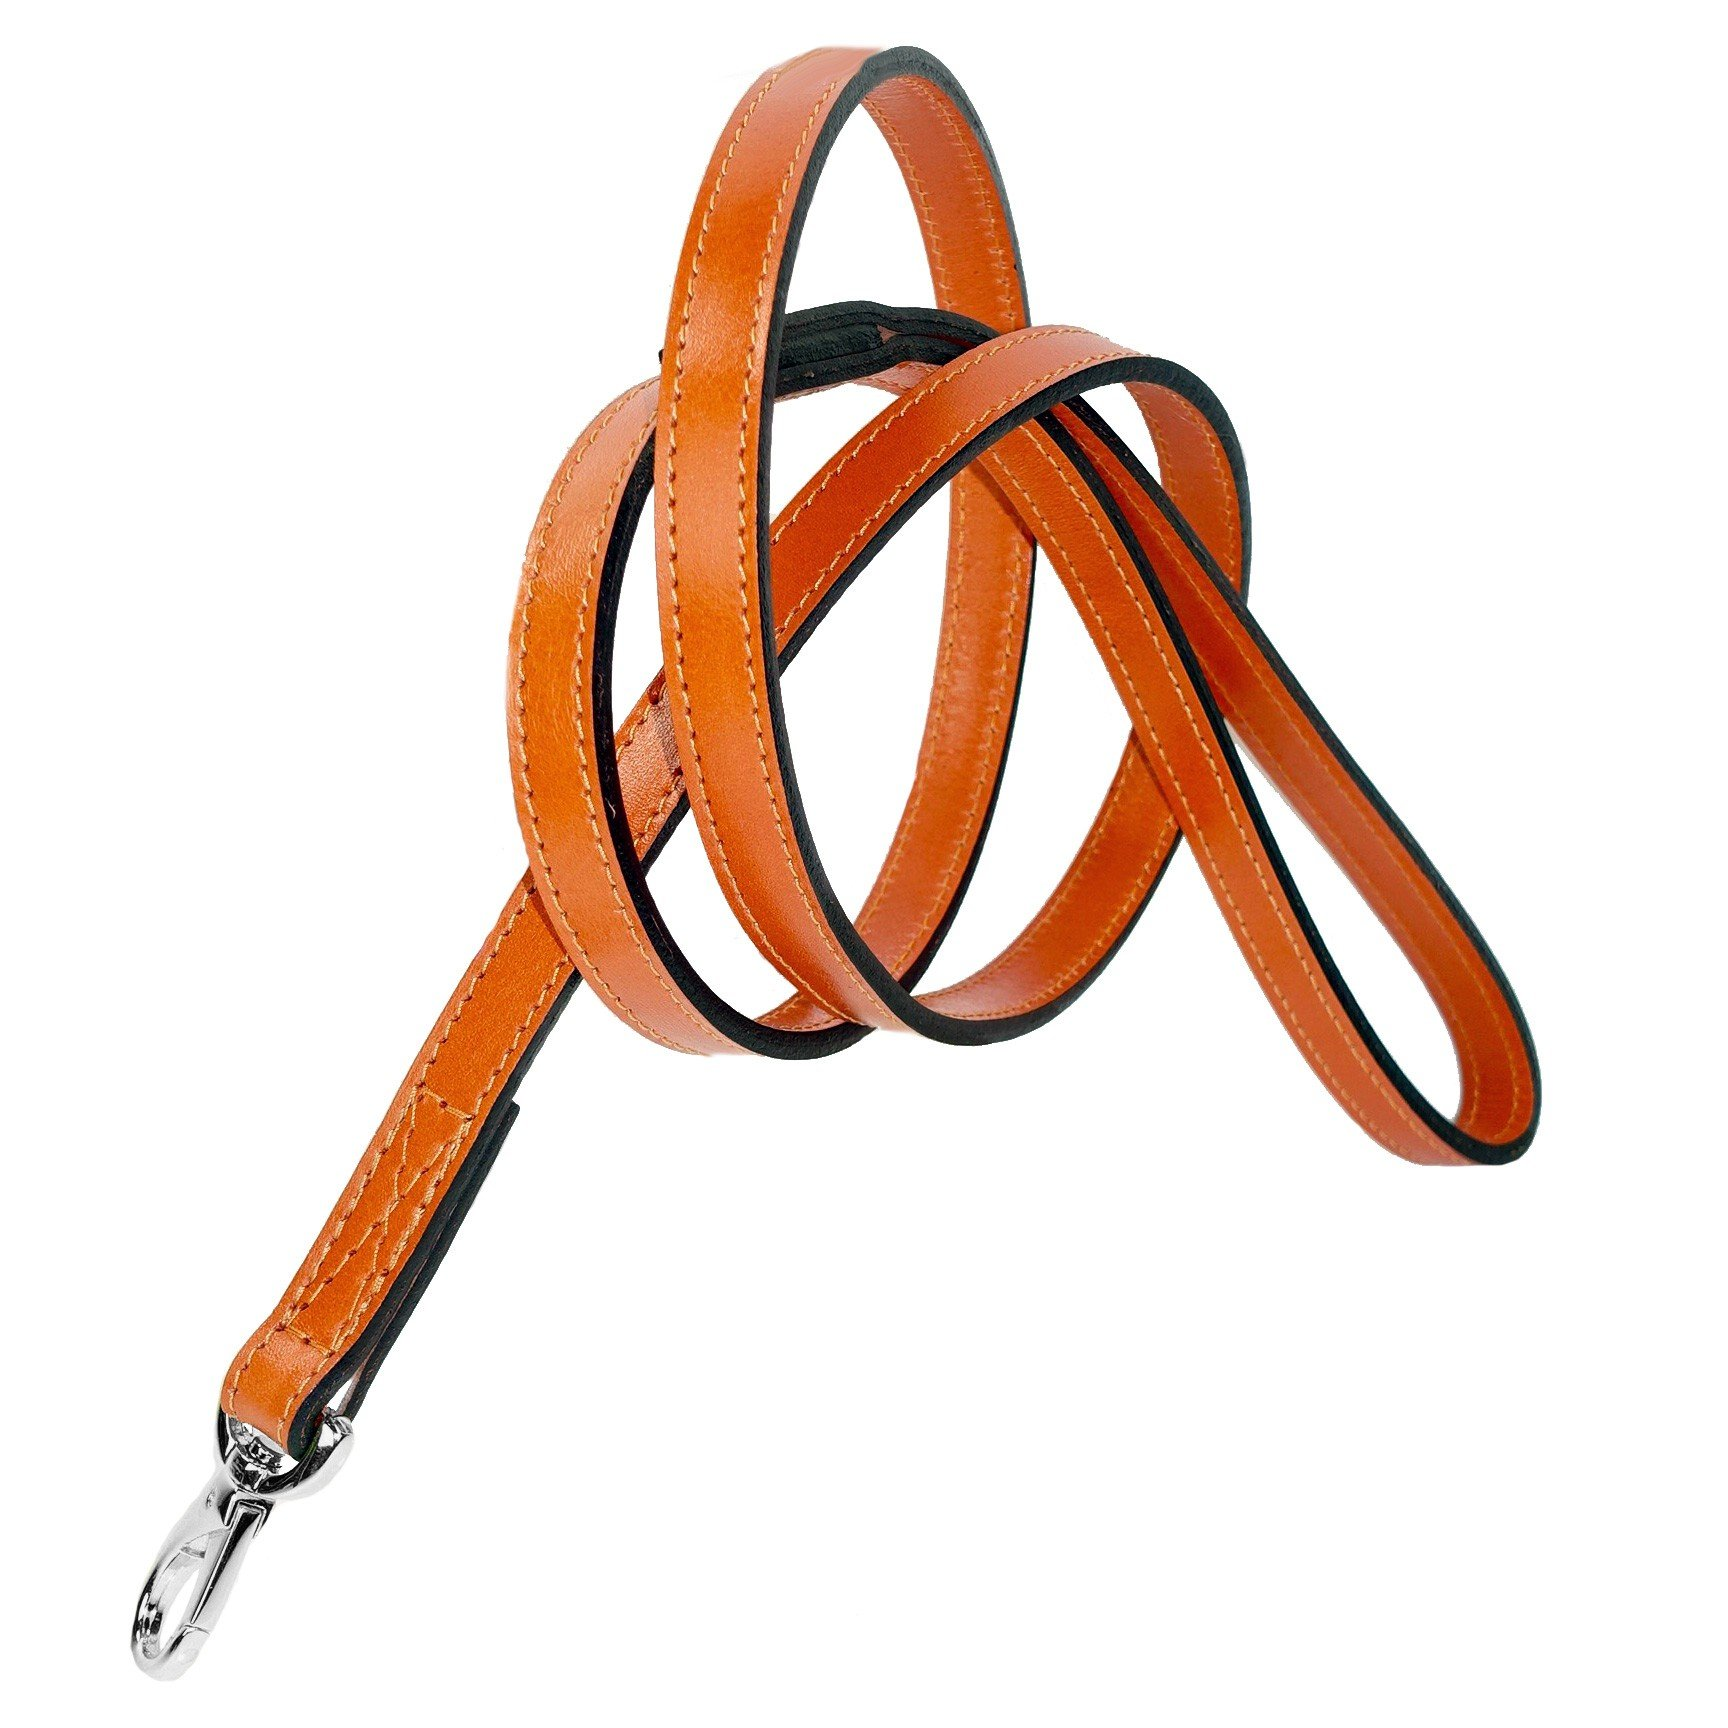 Hartman & Rose Leather Dog Leash with Nickel Plated Hardware - Italian Leather Collection Walking & Training Leads Tangerine Orange, 4 Feet by 3/4 Inch